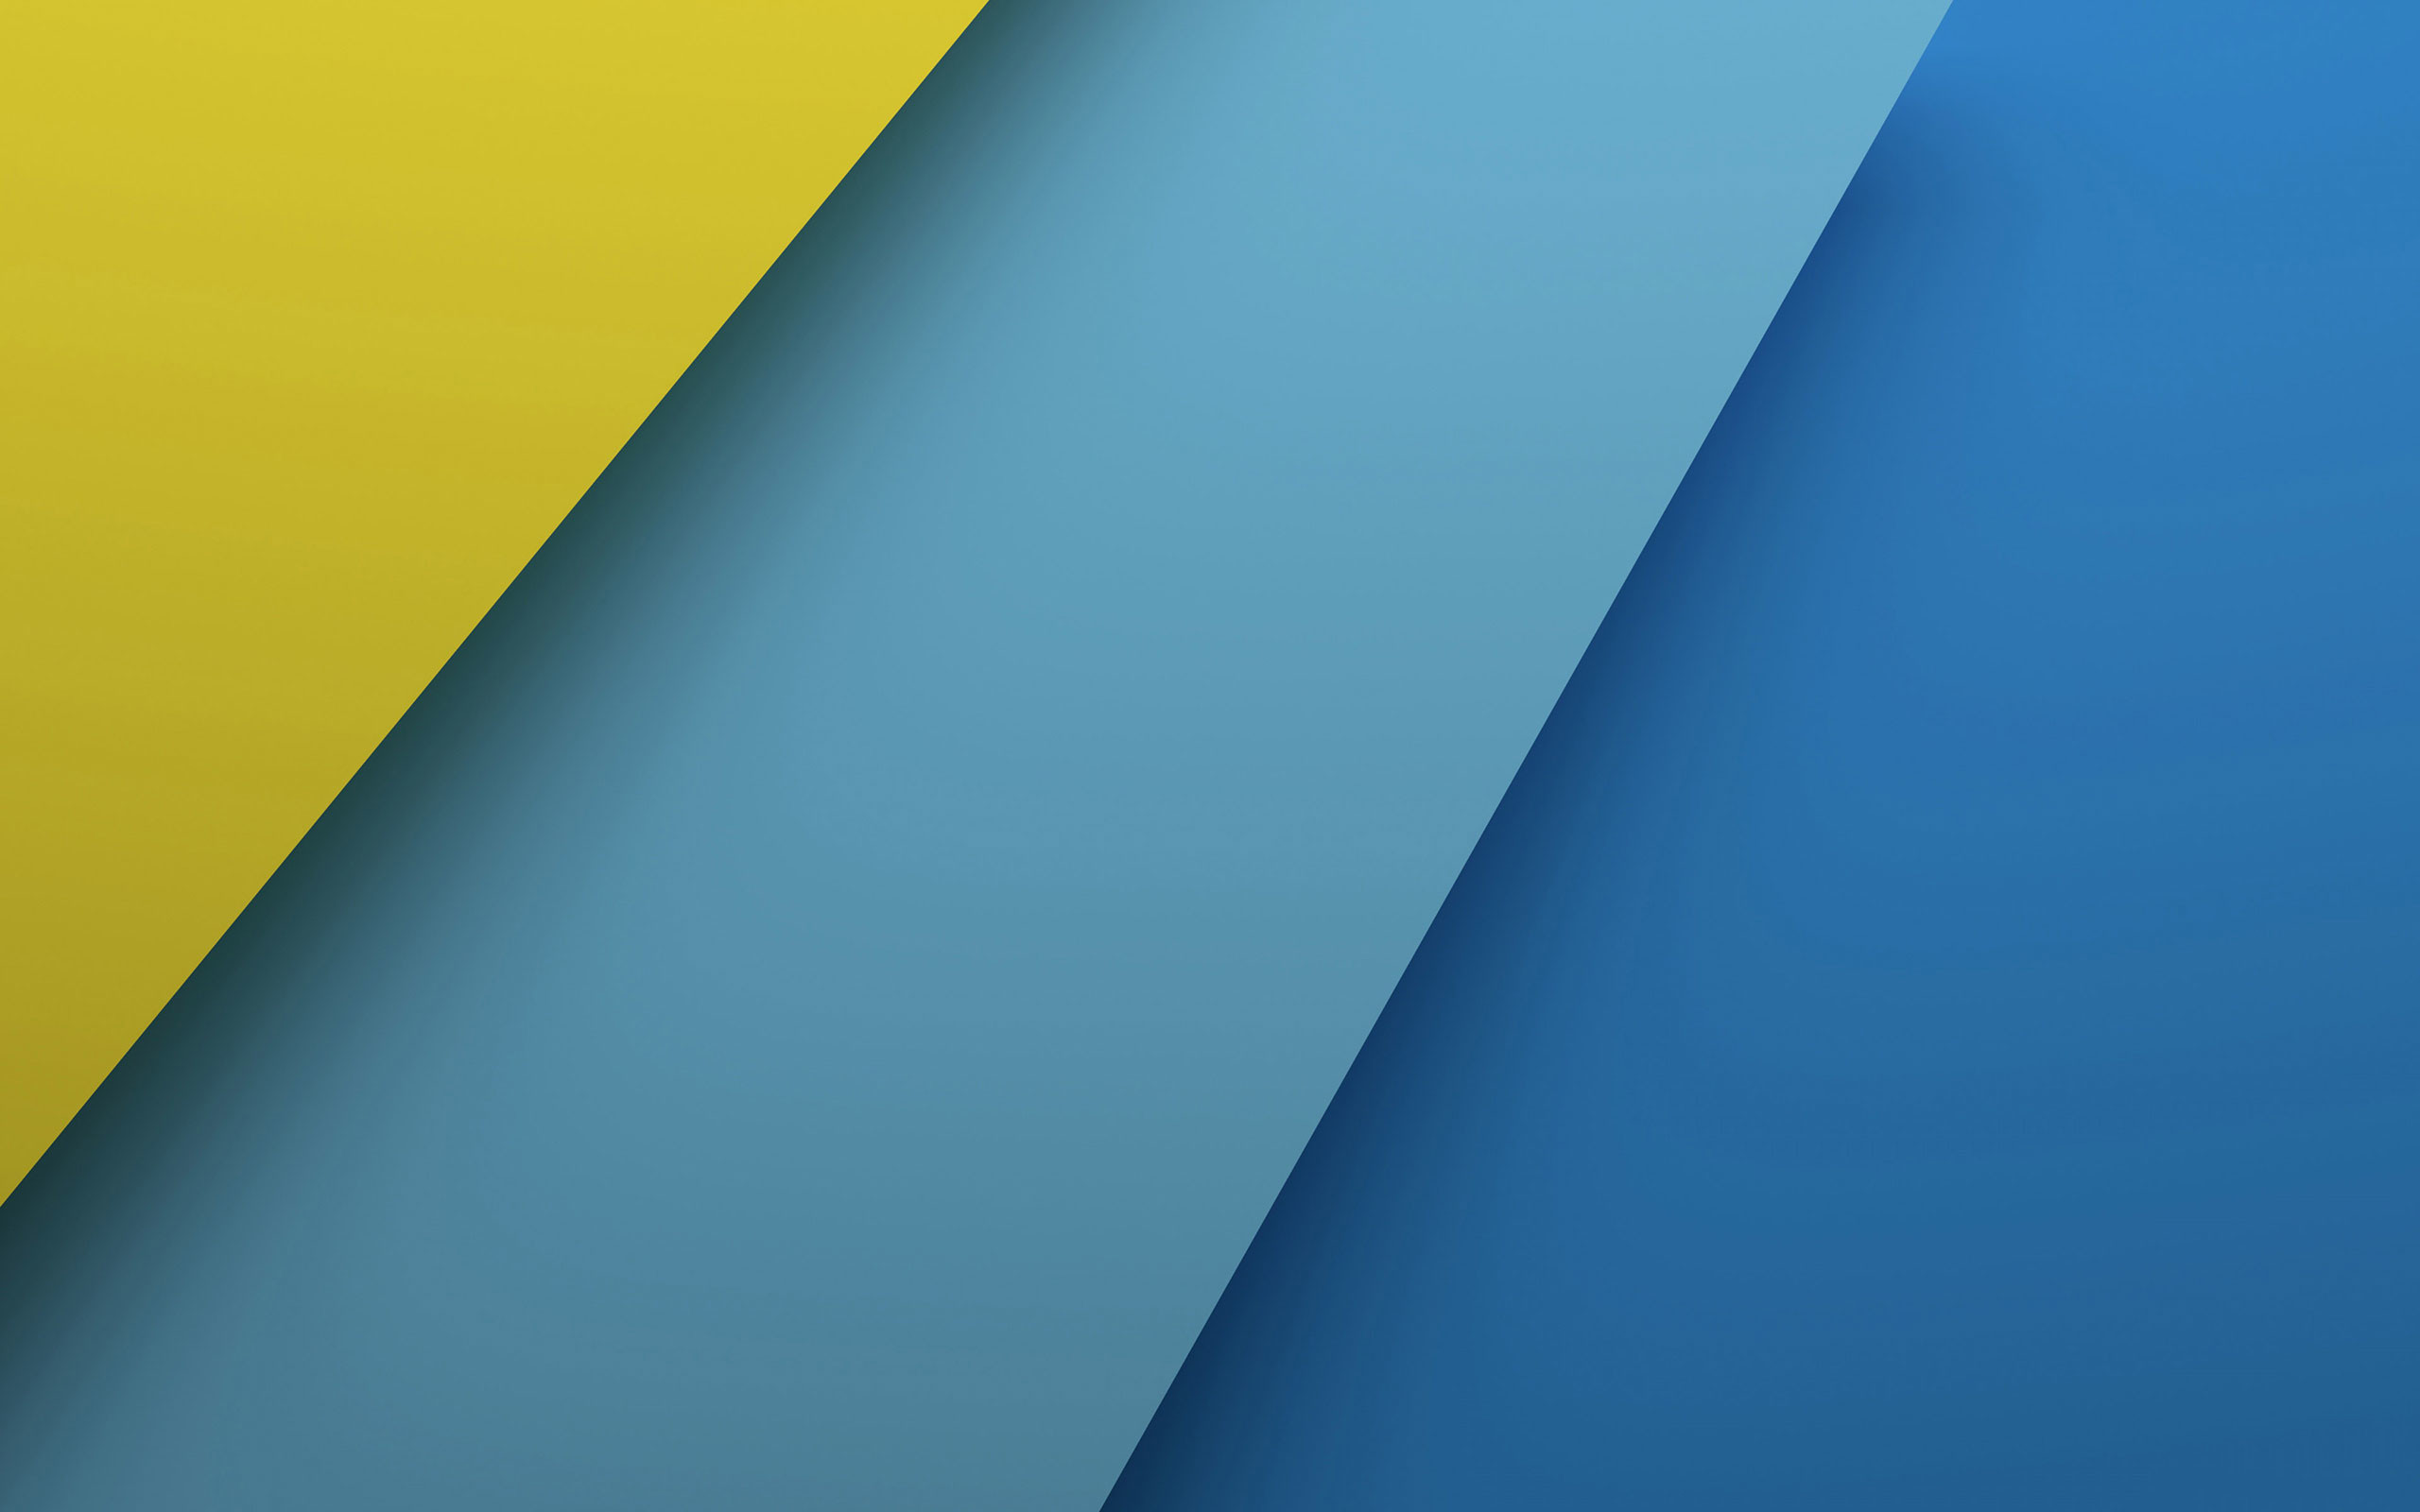 Google Nexus Backgrounds